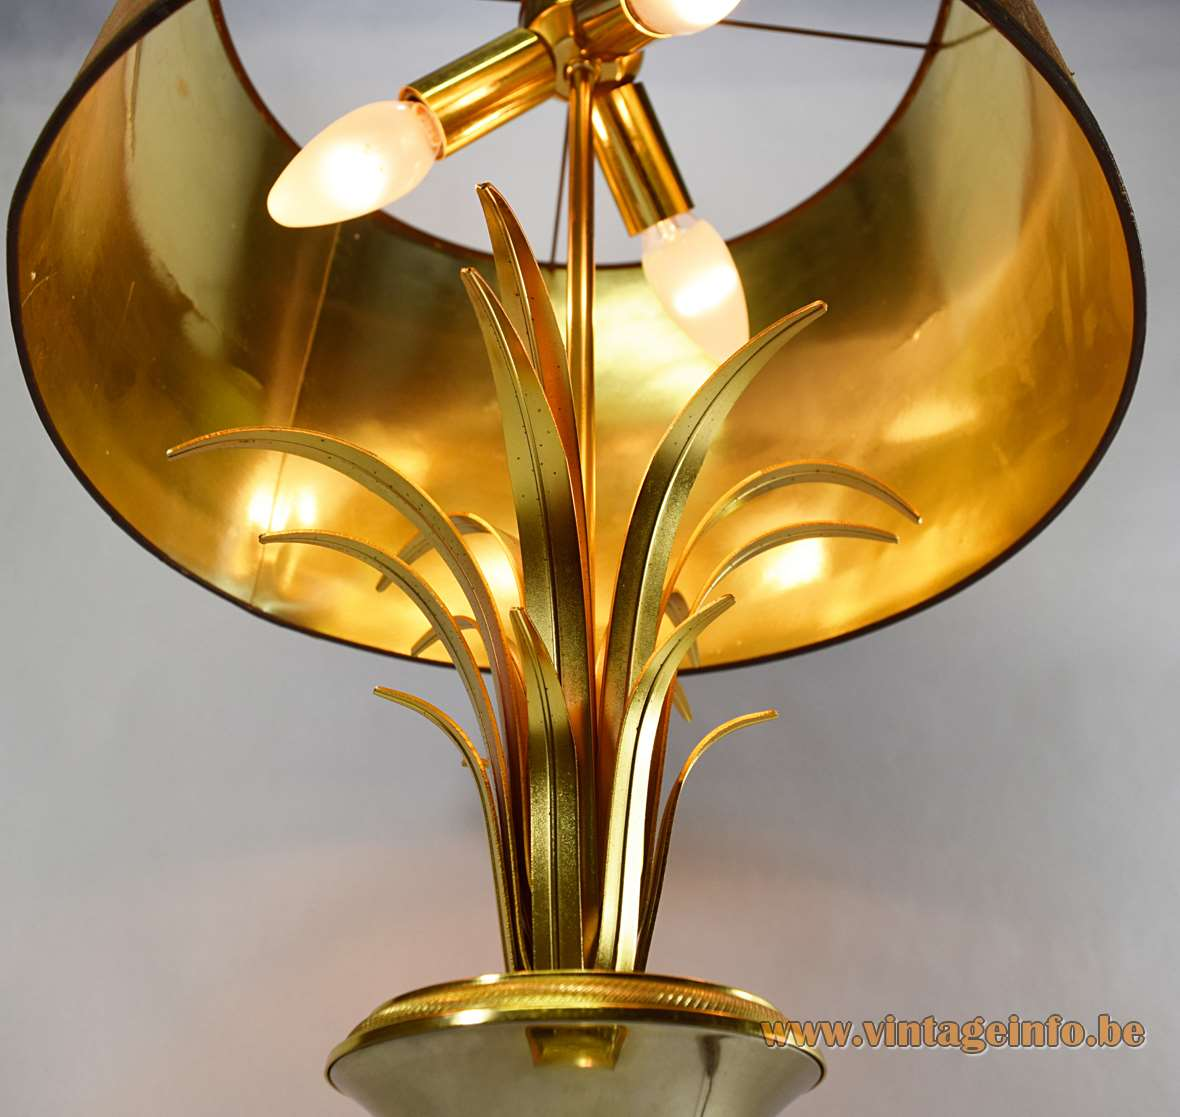 Boulanger Reed Table Lamps, chrome, brass, fabric lampshade, square base, palm, urn 1960s, 1970s